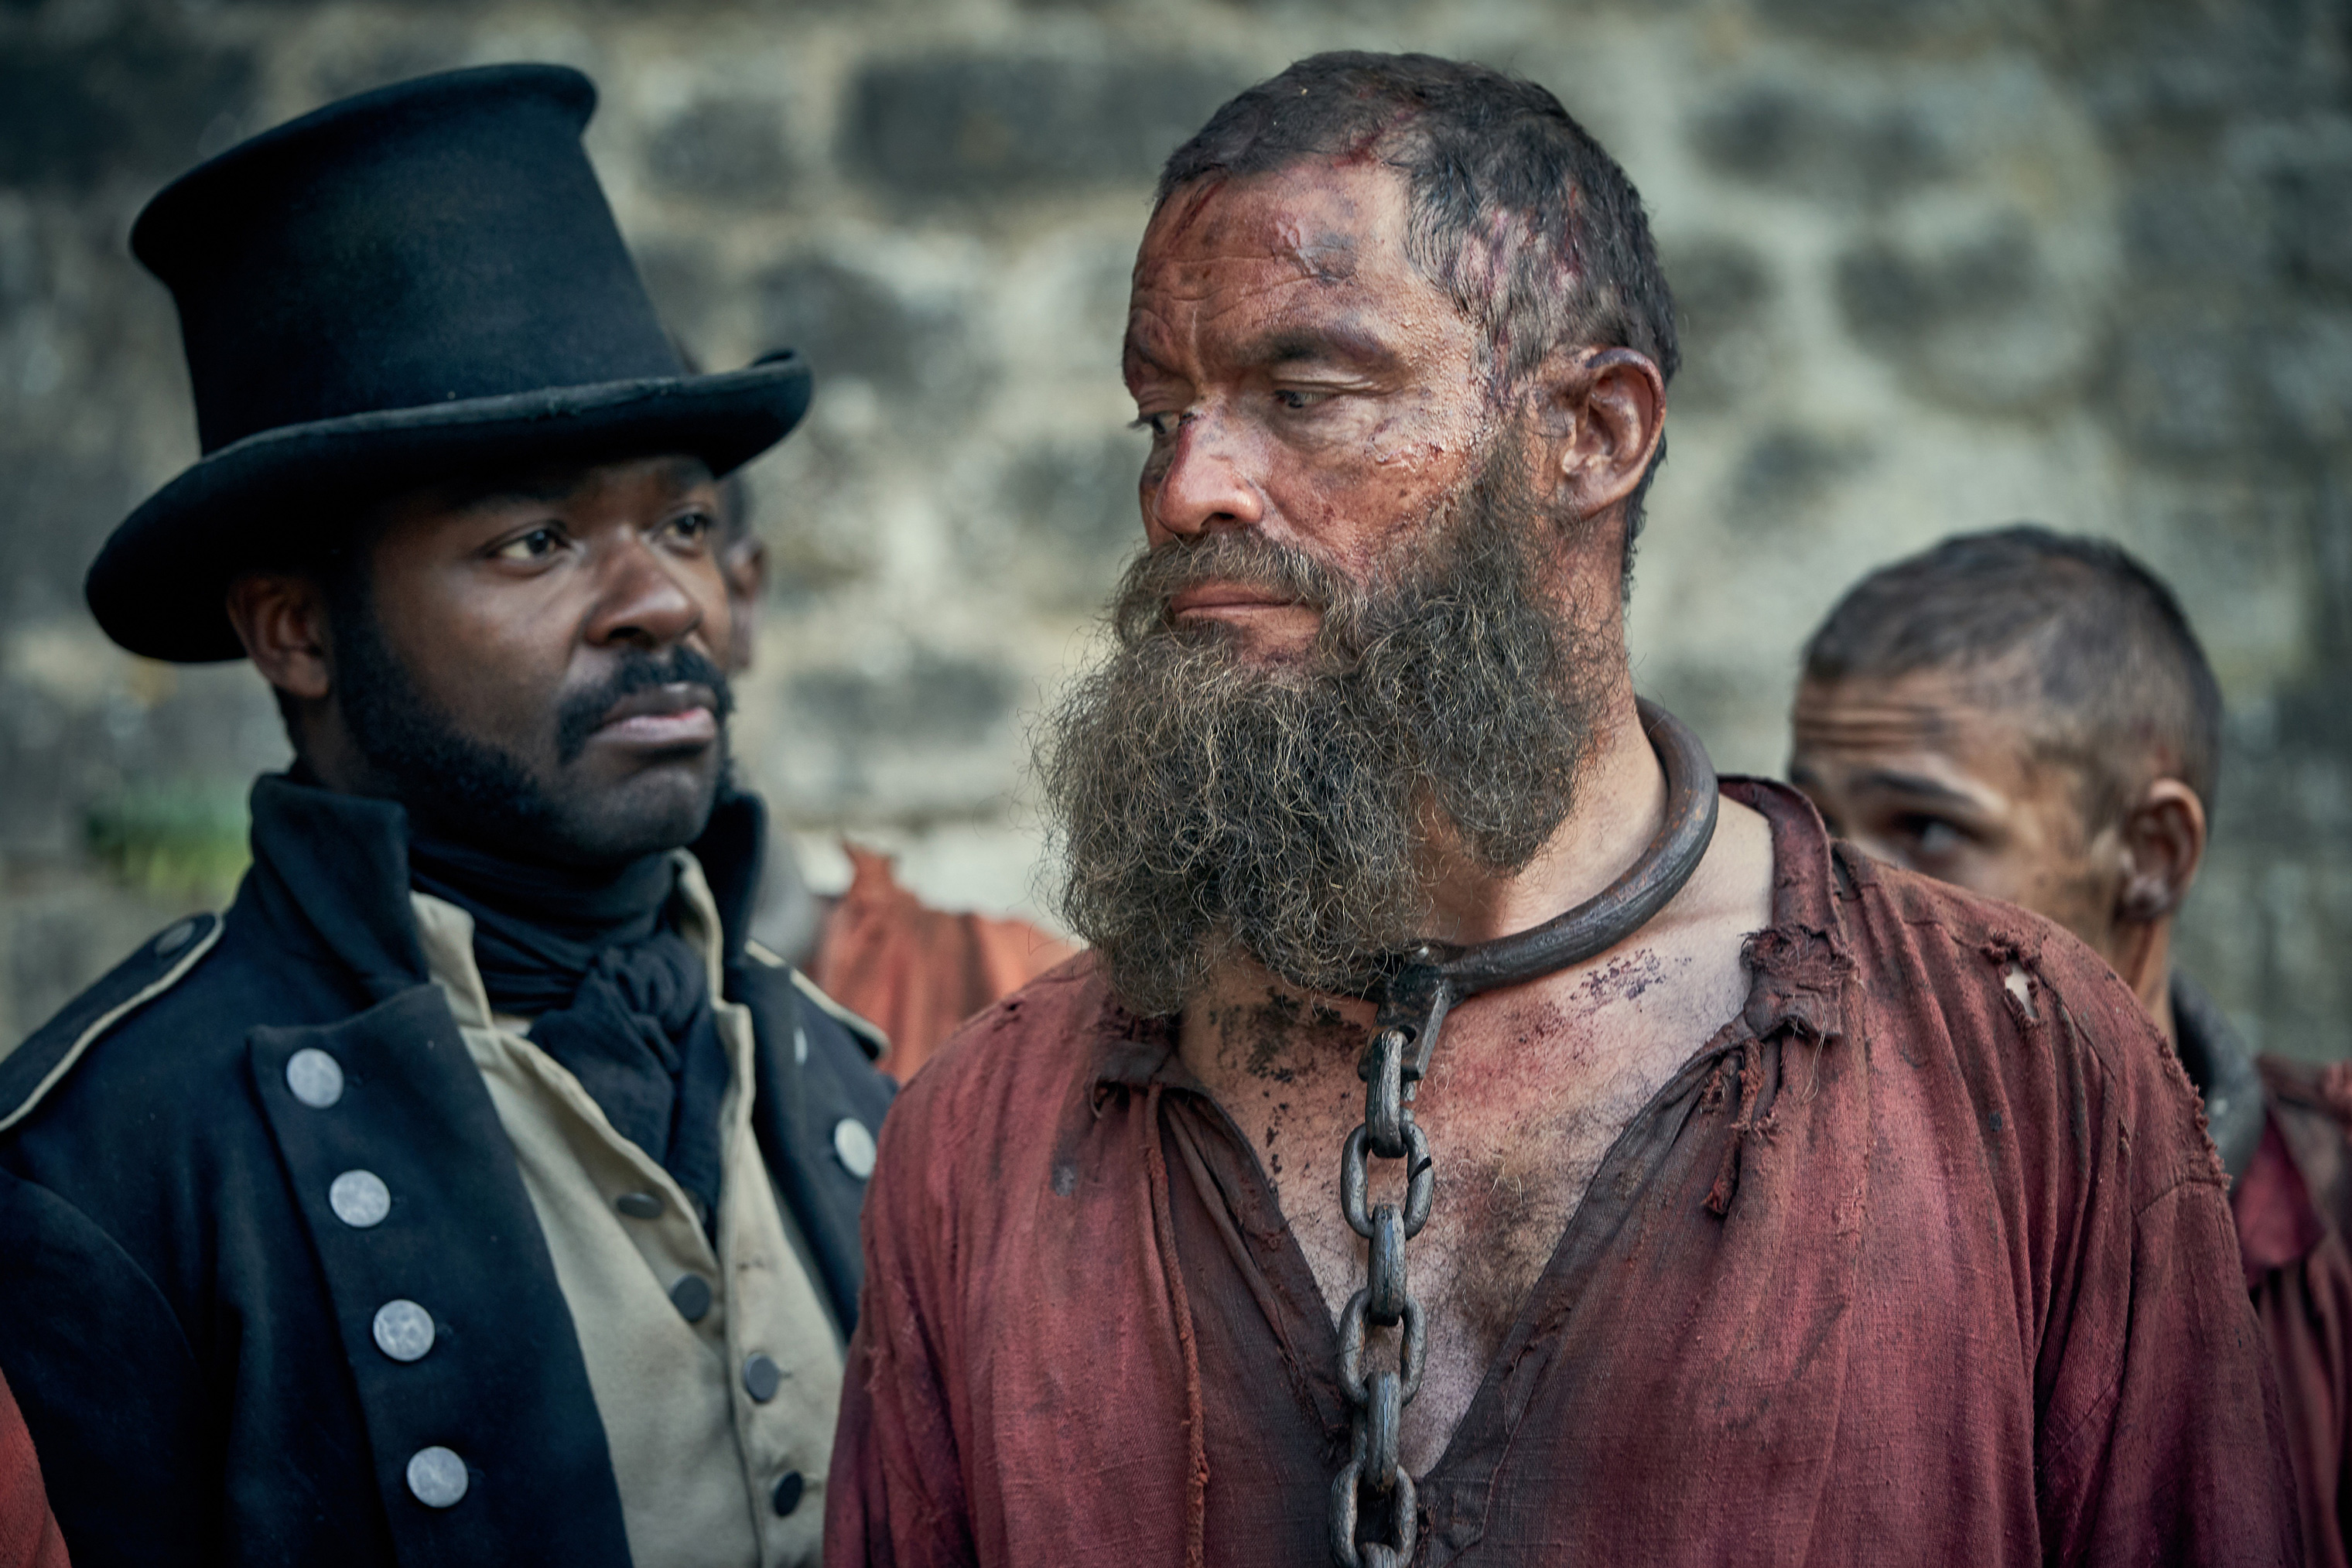 David Oyelowo as Javert and Dominic West as Jean Valjean in Les Misérables on PBS's Masterpiece.